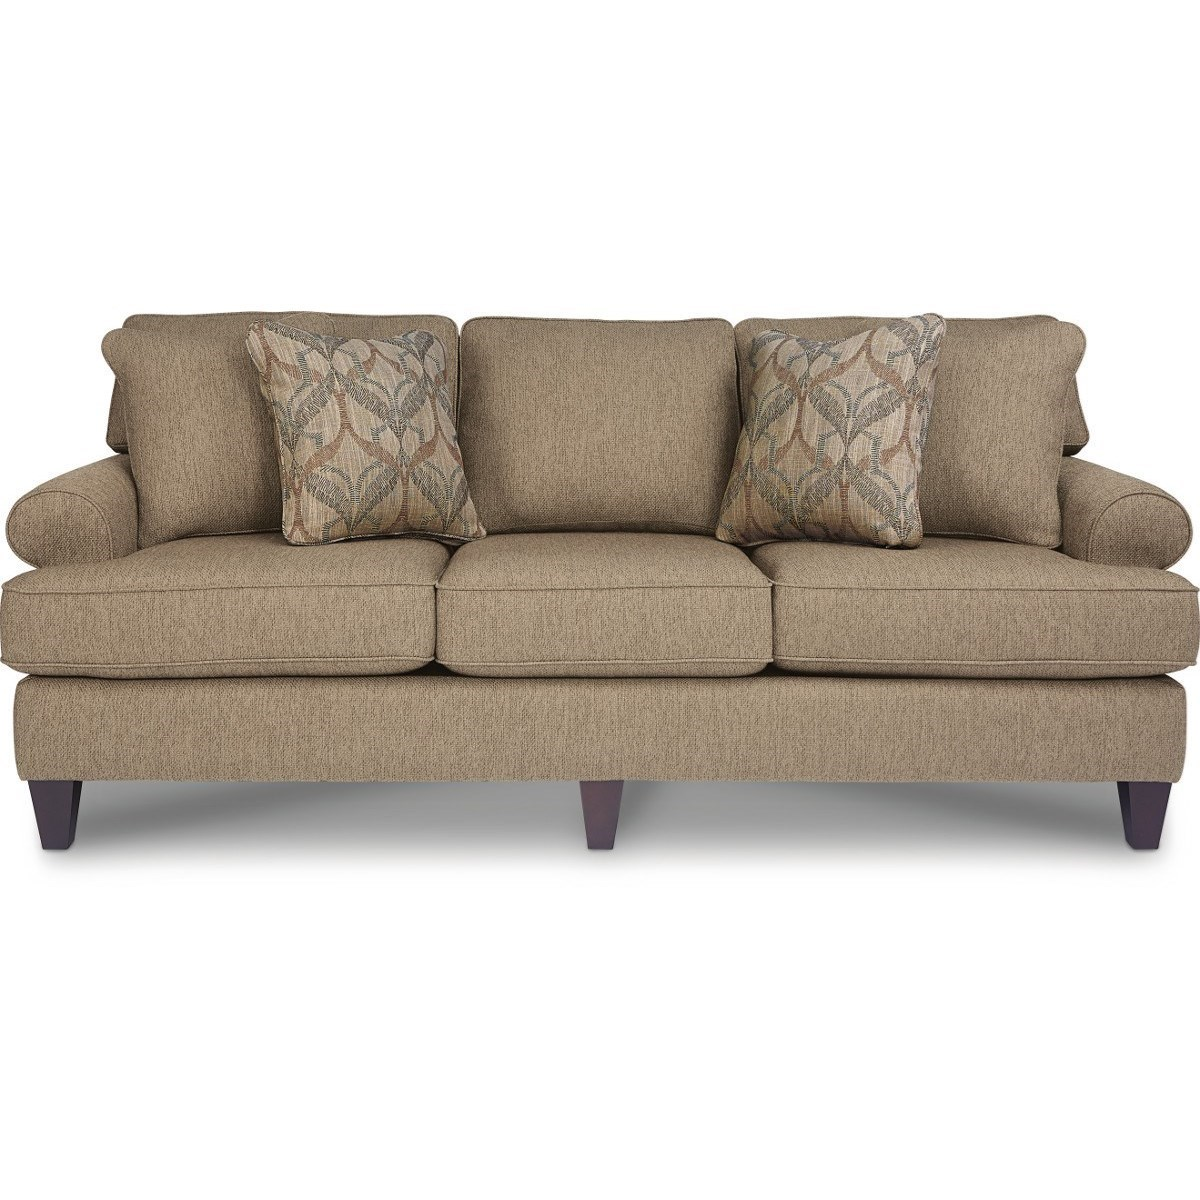 Dinner Sofa La Z Boy Porter Transitional Sofa With Premier Comfortcore